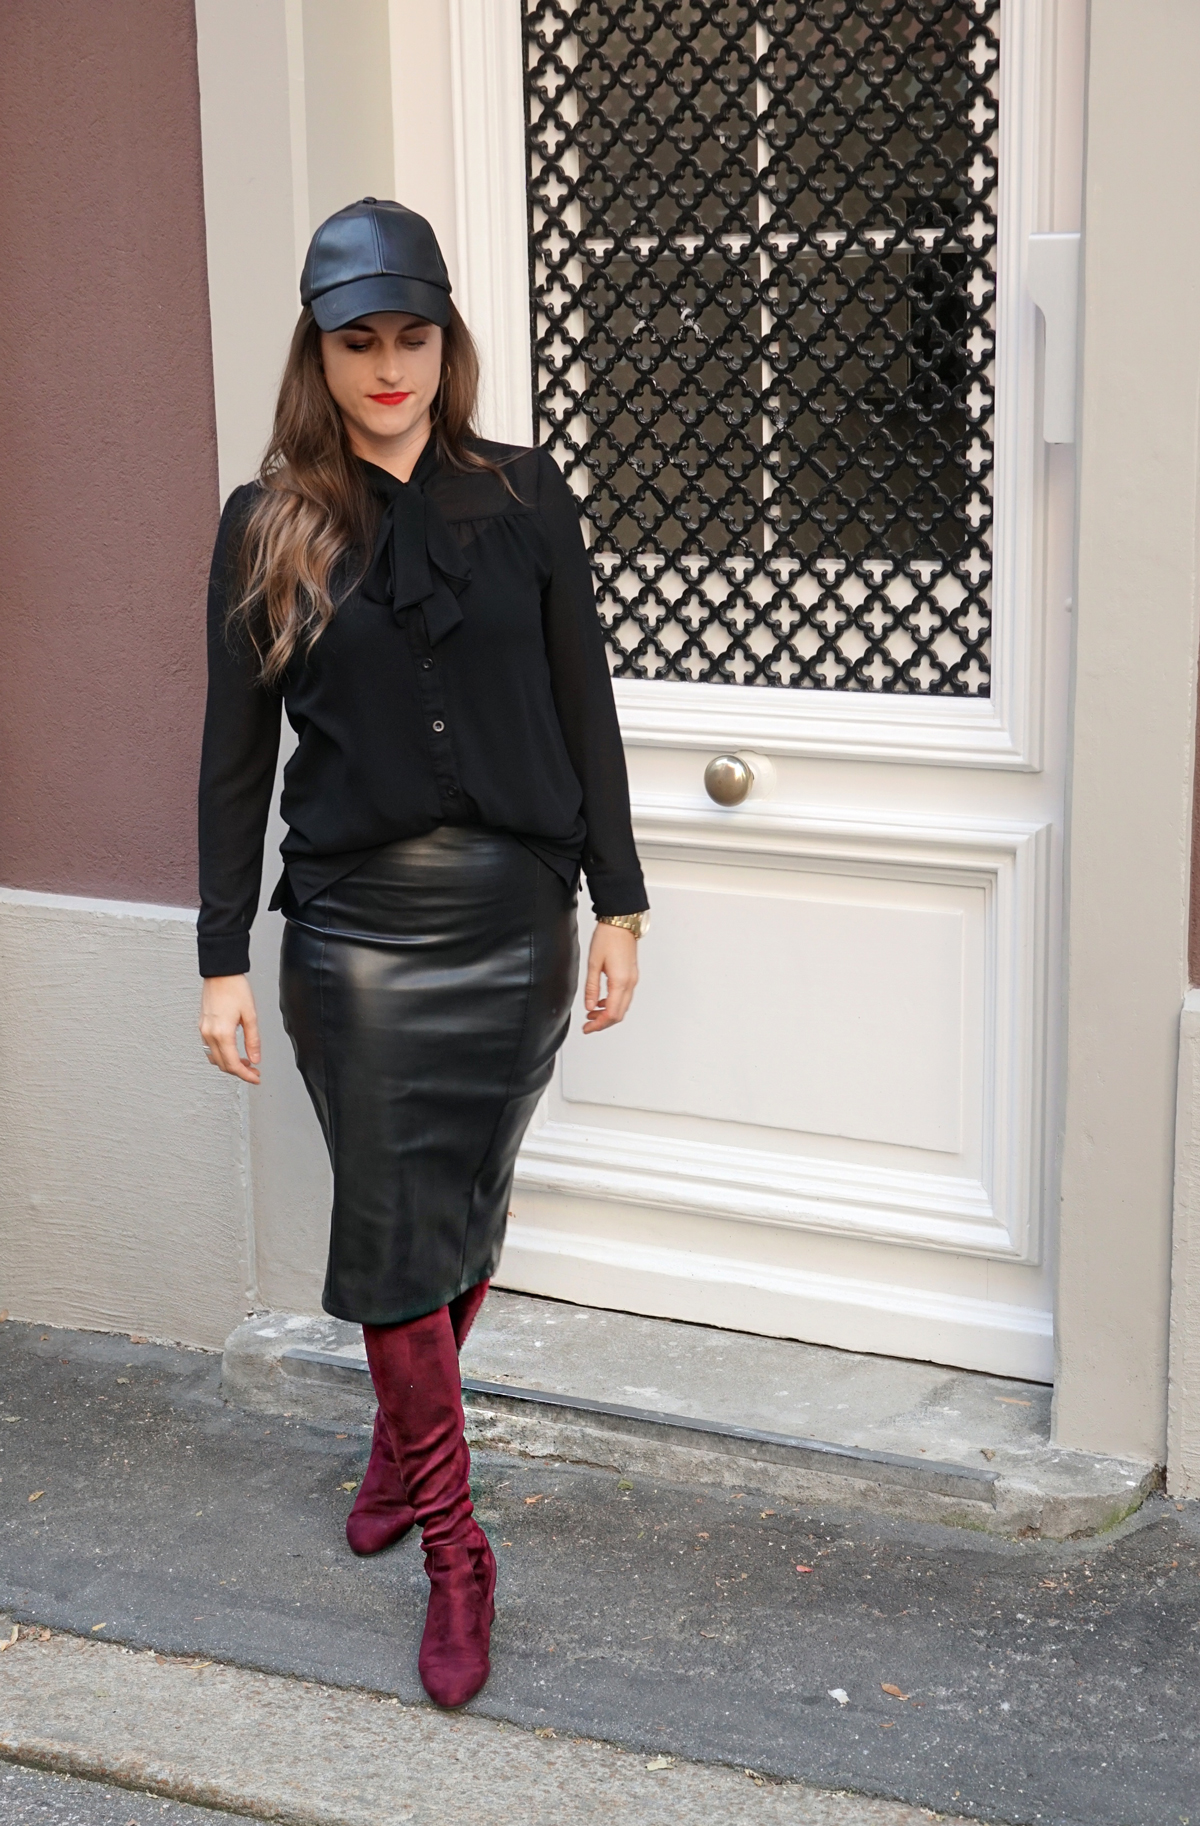 Outfit for fall. Leather skirt with a leather cap and overknees.